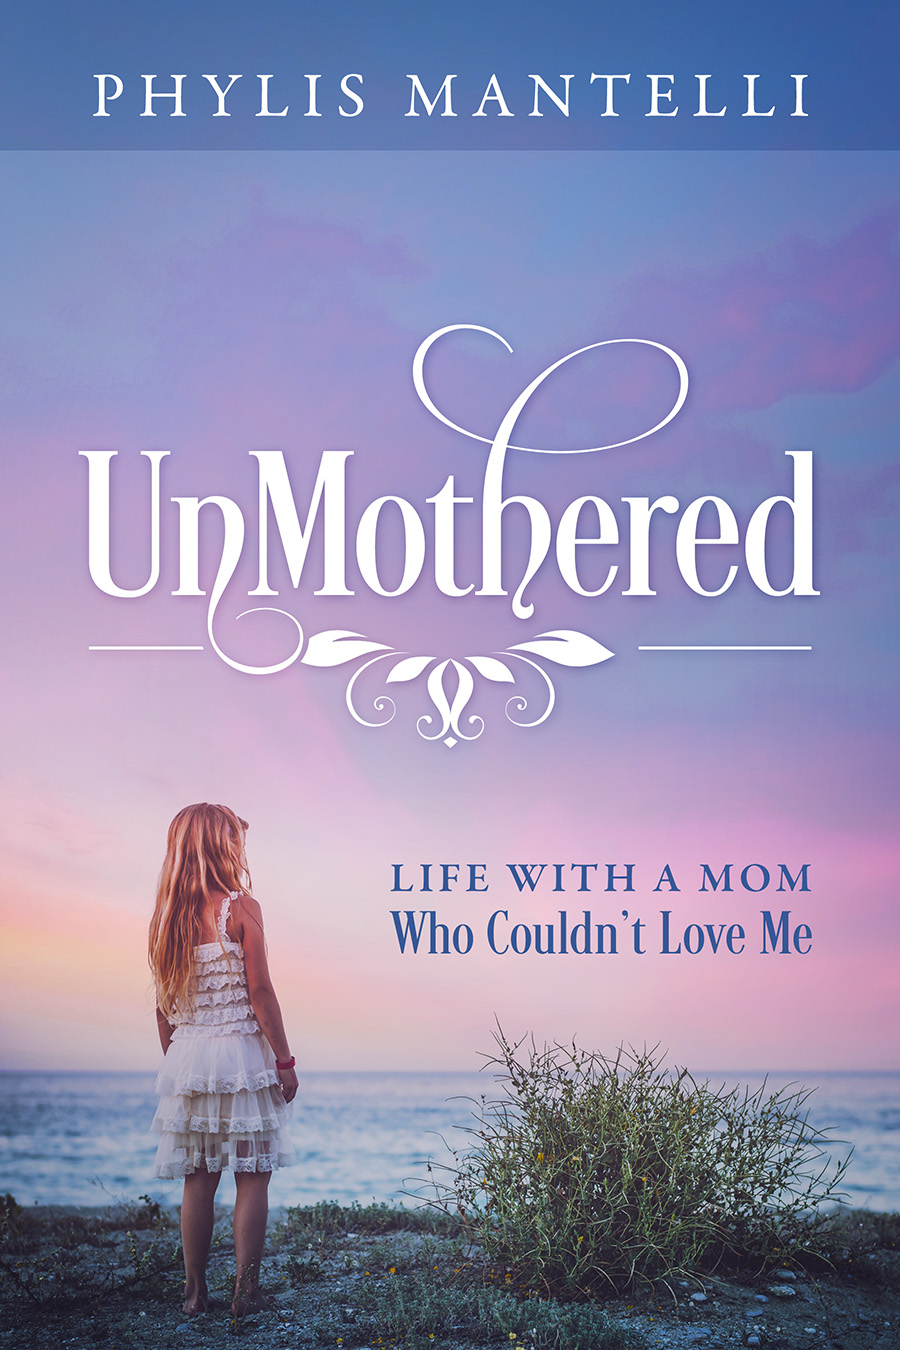 Unmothered: Life with a Mom Who Couldn't Love Me - In her memoir Unmothered: Life with a Mom Who Couldn't Love Me, popular blogger and speaker Phylis Mantelli takes readers on the roller-coaster journey of growing up with an alcoholic, narcissistic mother. Though often made to feel worthless as a daughter, Phylis, by God's grace, eventually breaks through the pain and replaces it with a heart of a daughter who loves her mom unconditionally. Her book offers hope and encouragement to those struggling with dysfunctional family relationships.